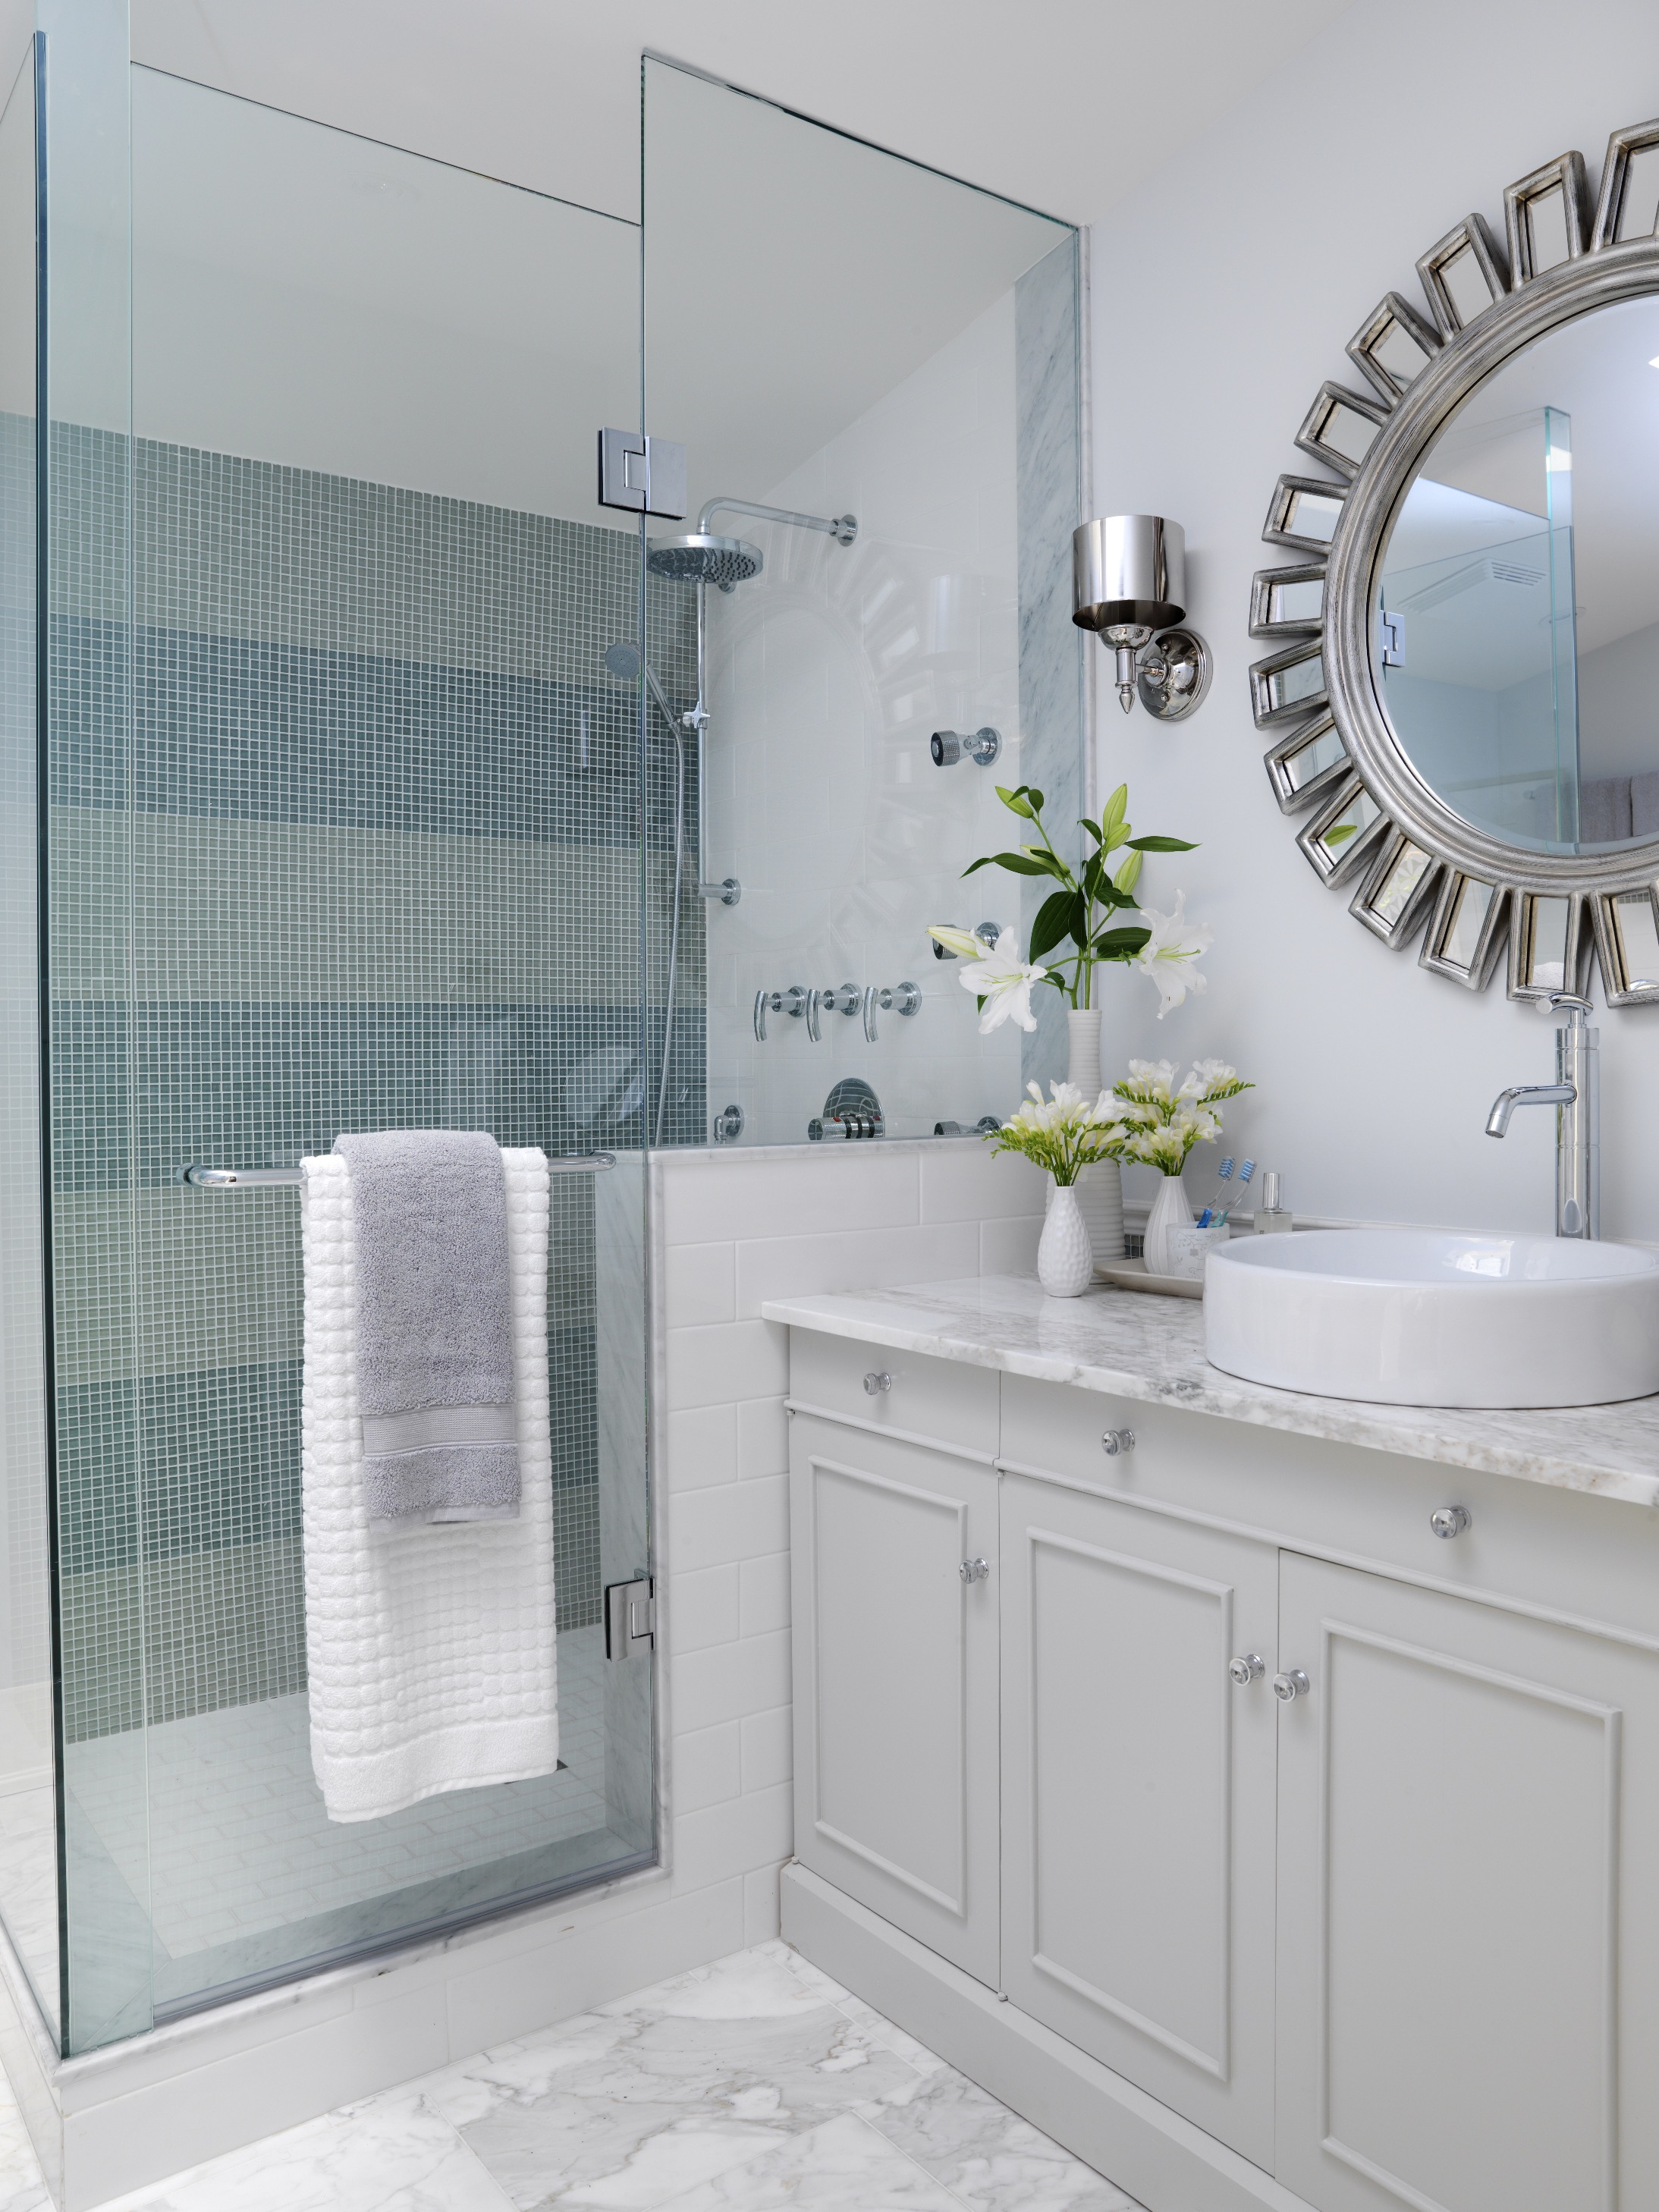 Elegant Small Bathroom With Dark Wood Cabinetry And Stark White Countertops (View 5 of 14)